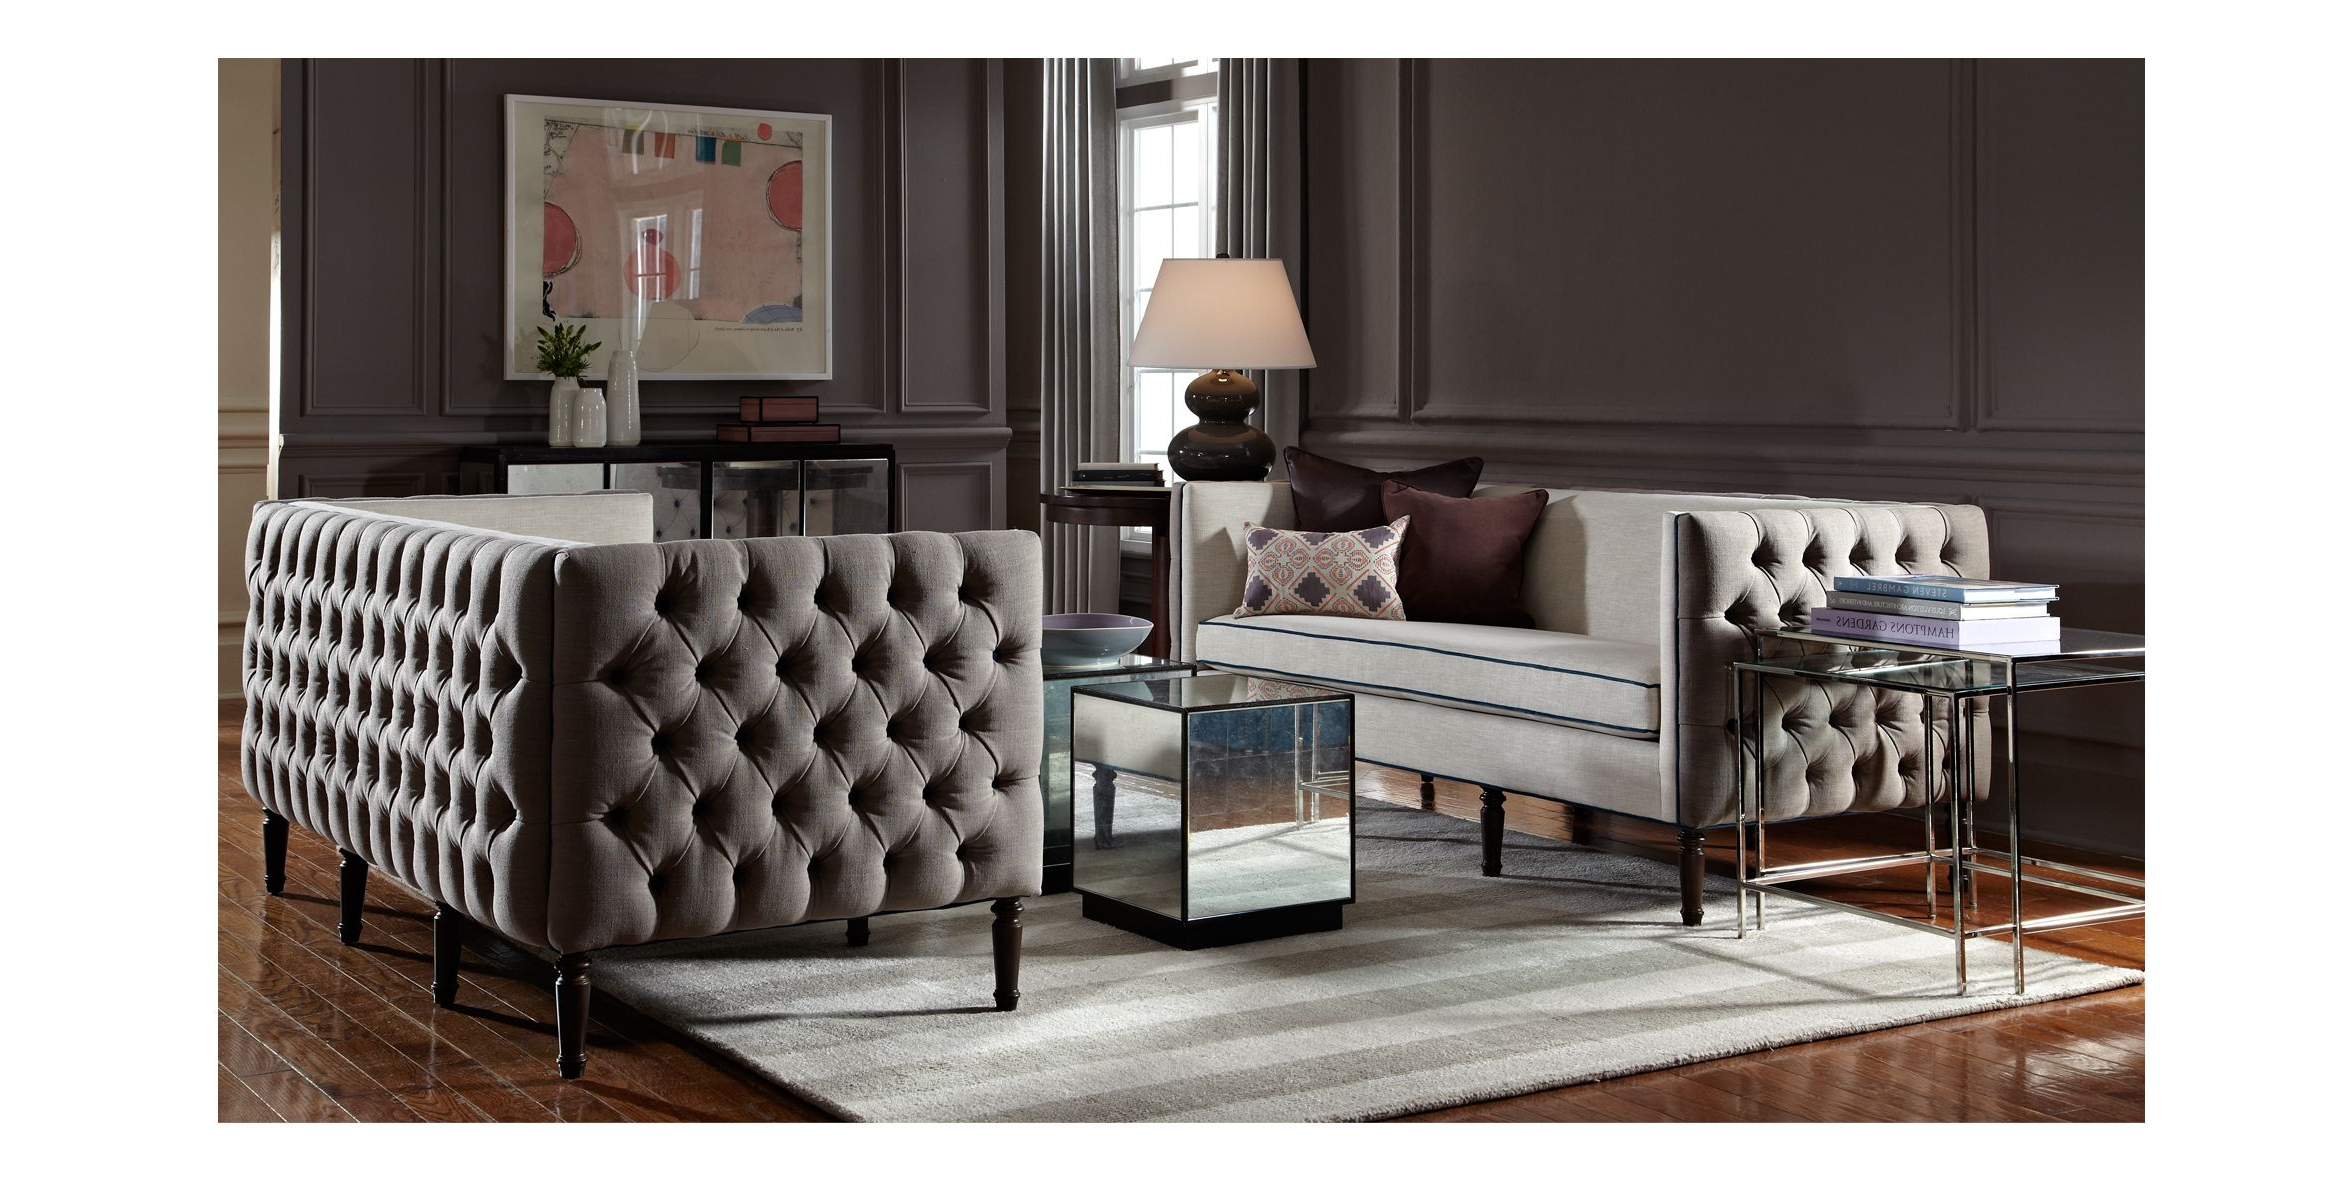 Modern Tufted Sofa – Google Search | Turn Of The Century Moderne In Parsons Grey Solid Surface Top & Dark Steel Base 48x16 Console Tables (View 20 of 20)